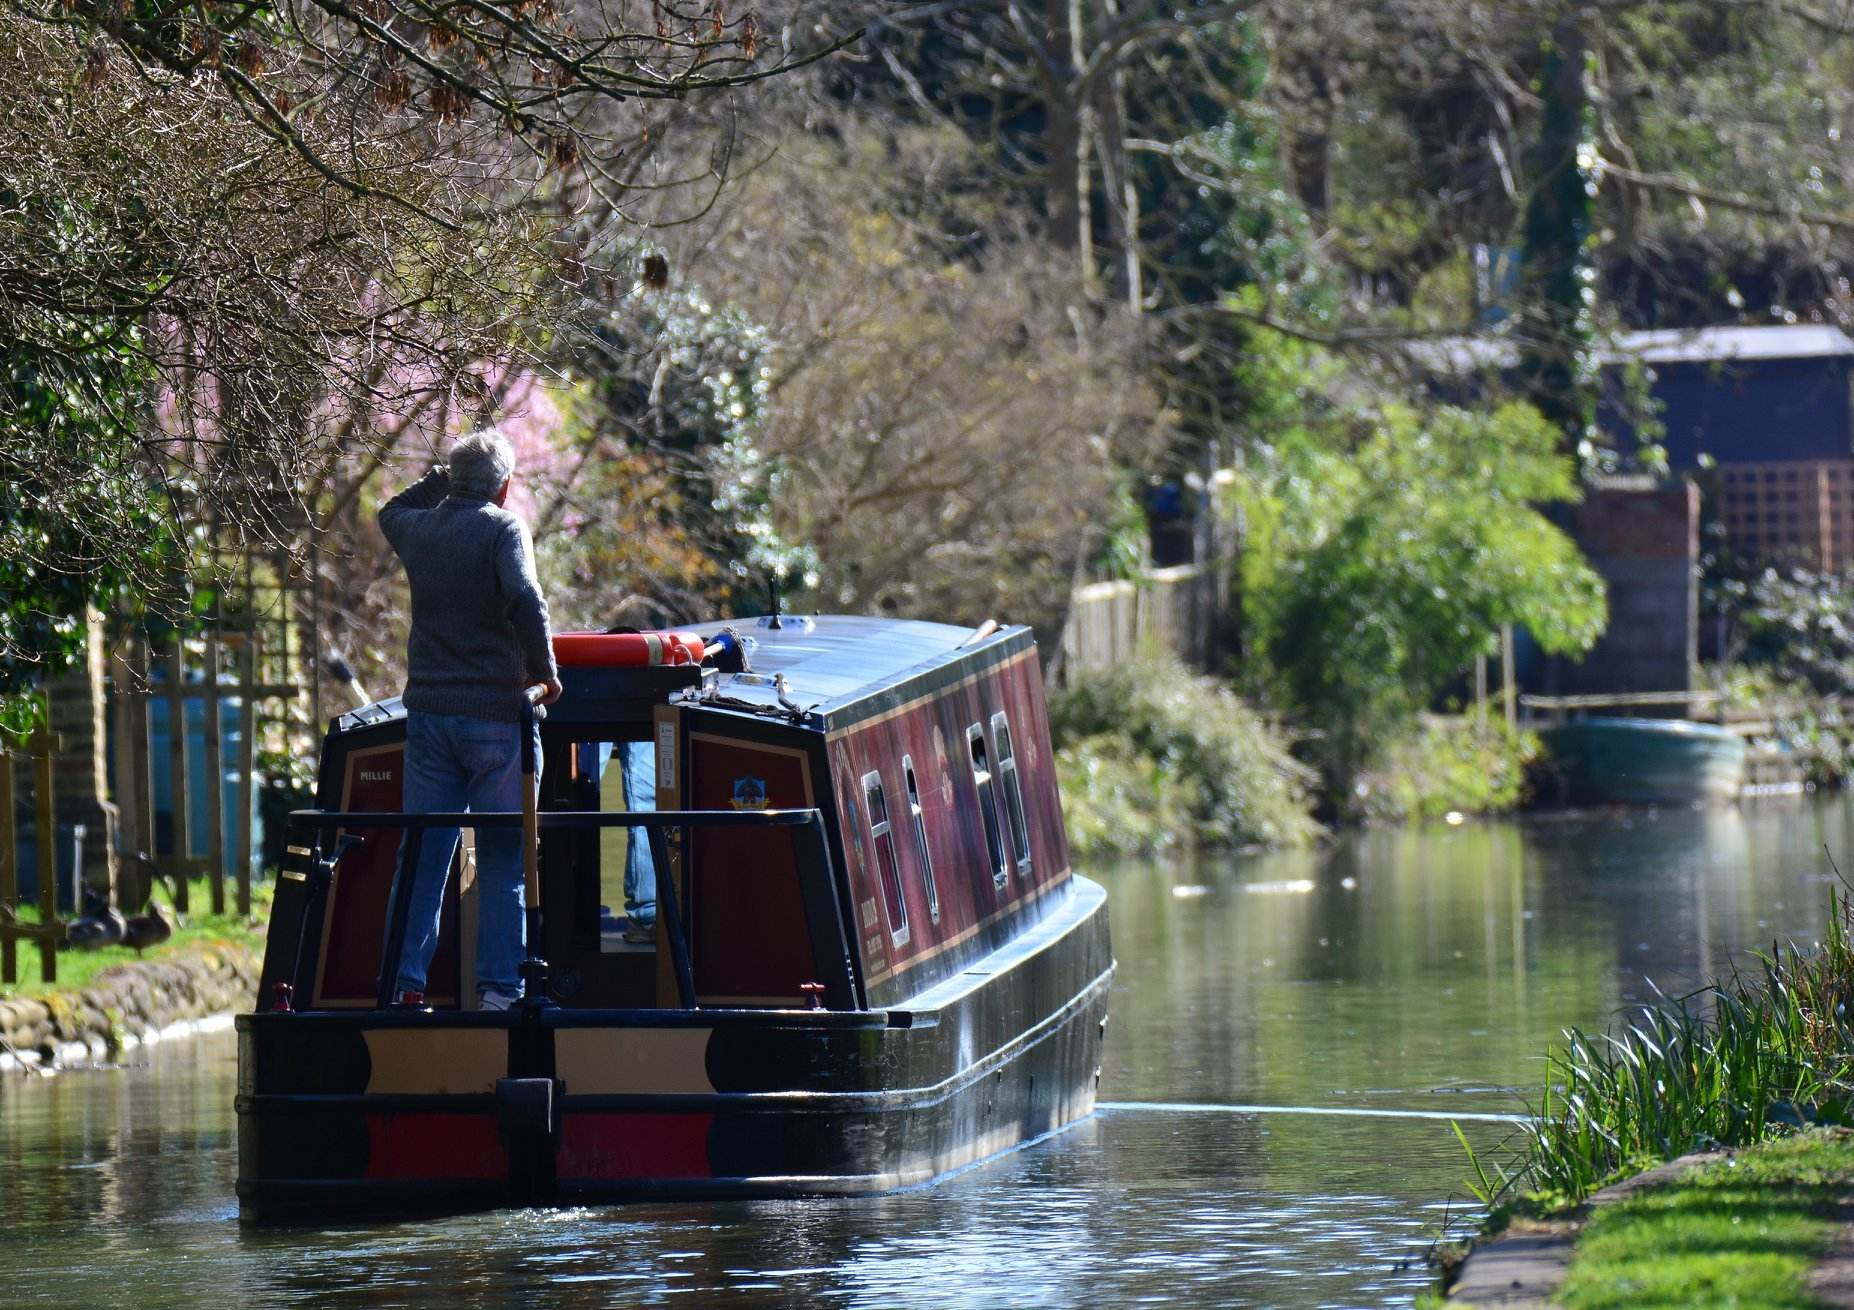 Oxford Canal improvements: £400,000 project will help wildlife